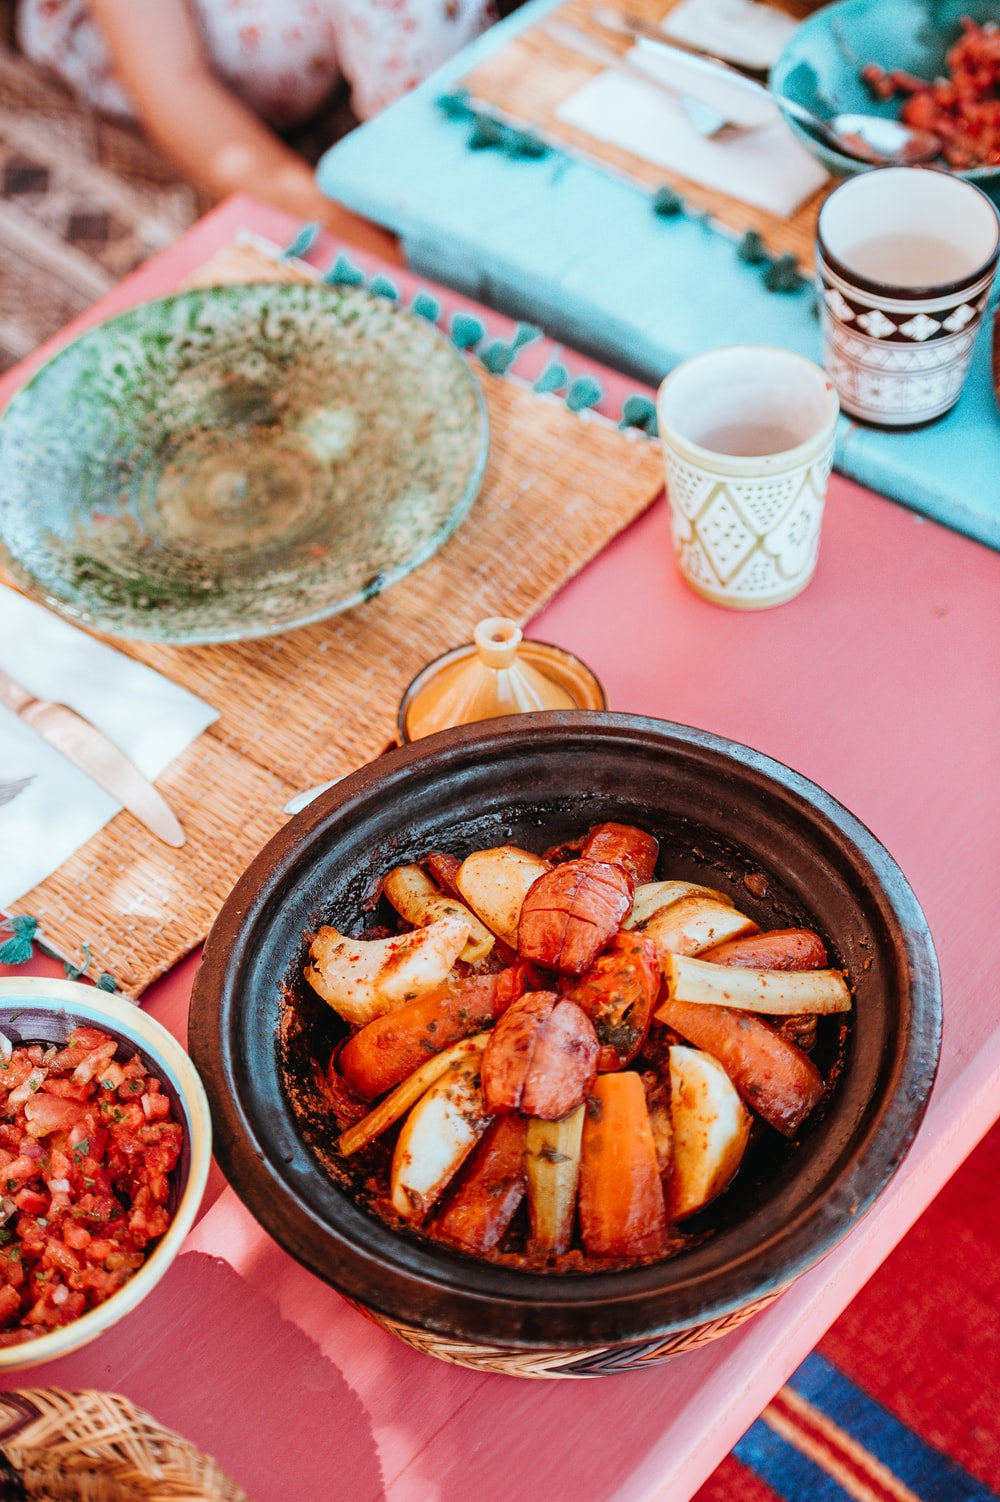 flavored food on bowl beside plate on top of table